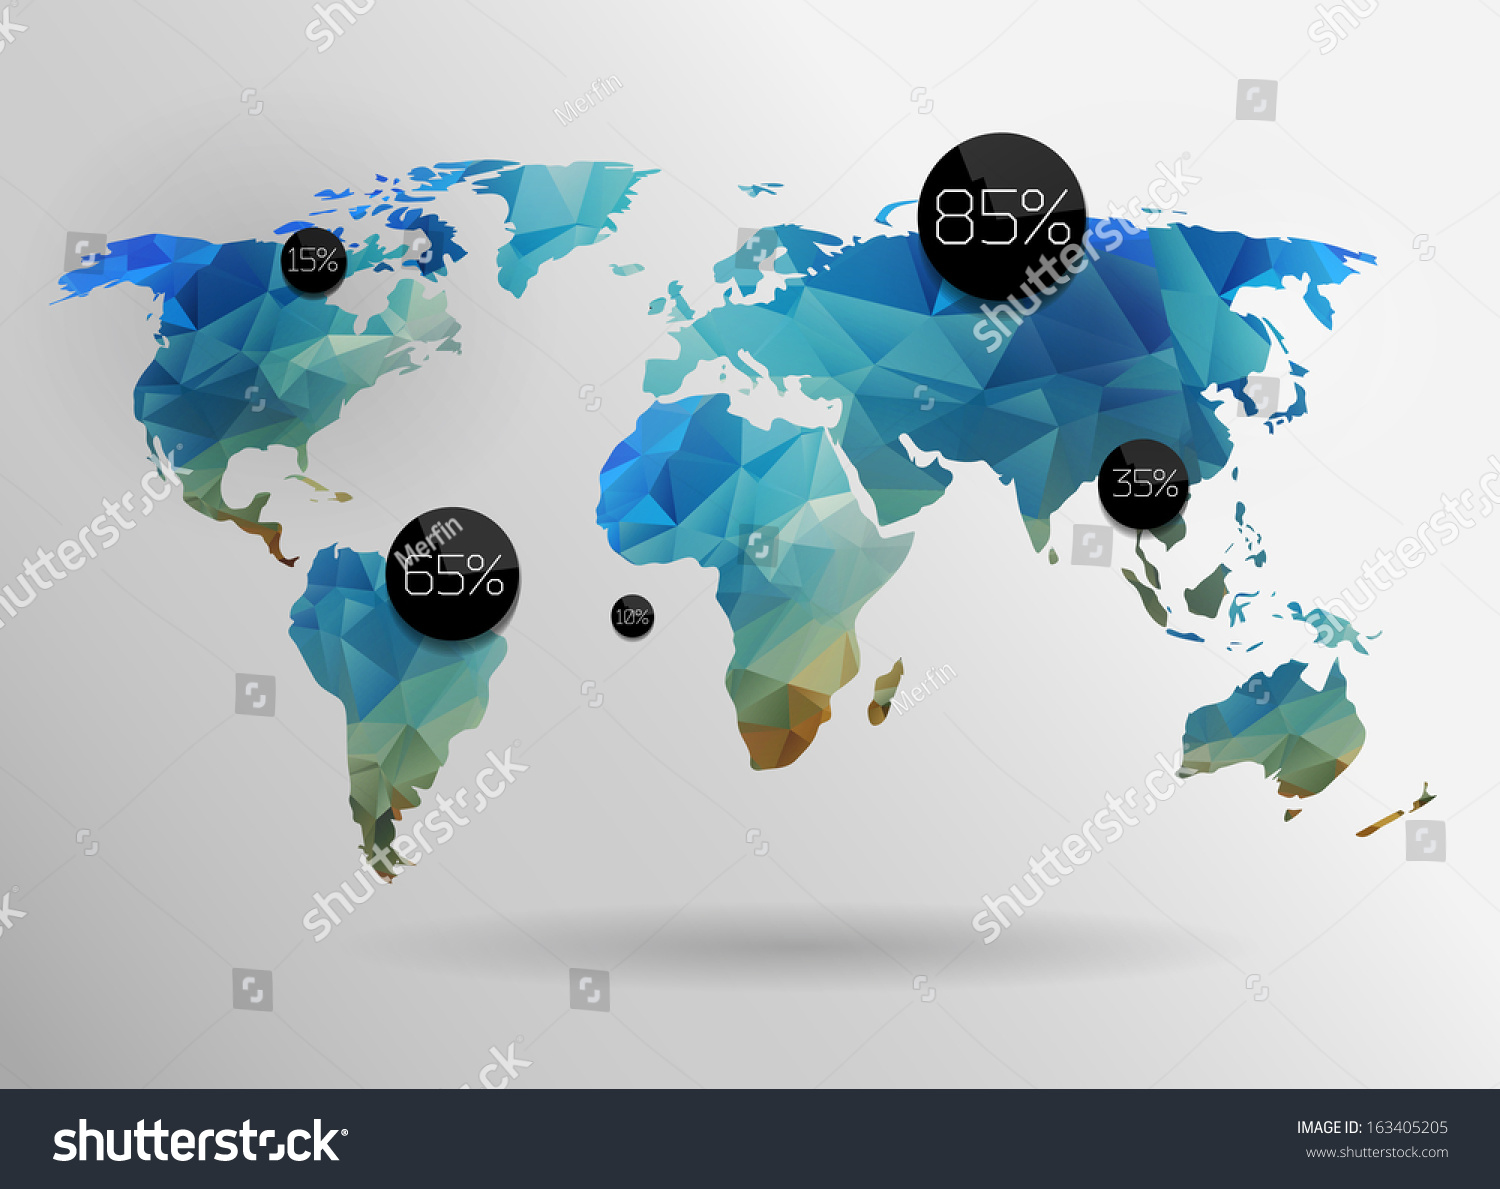 world map background vector - photo #39